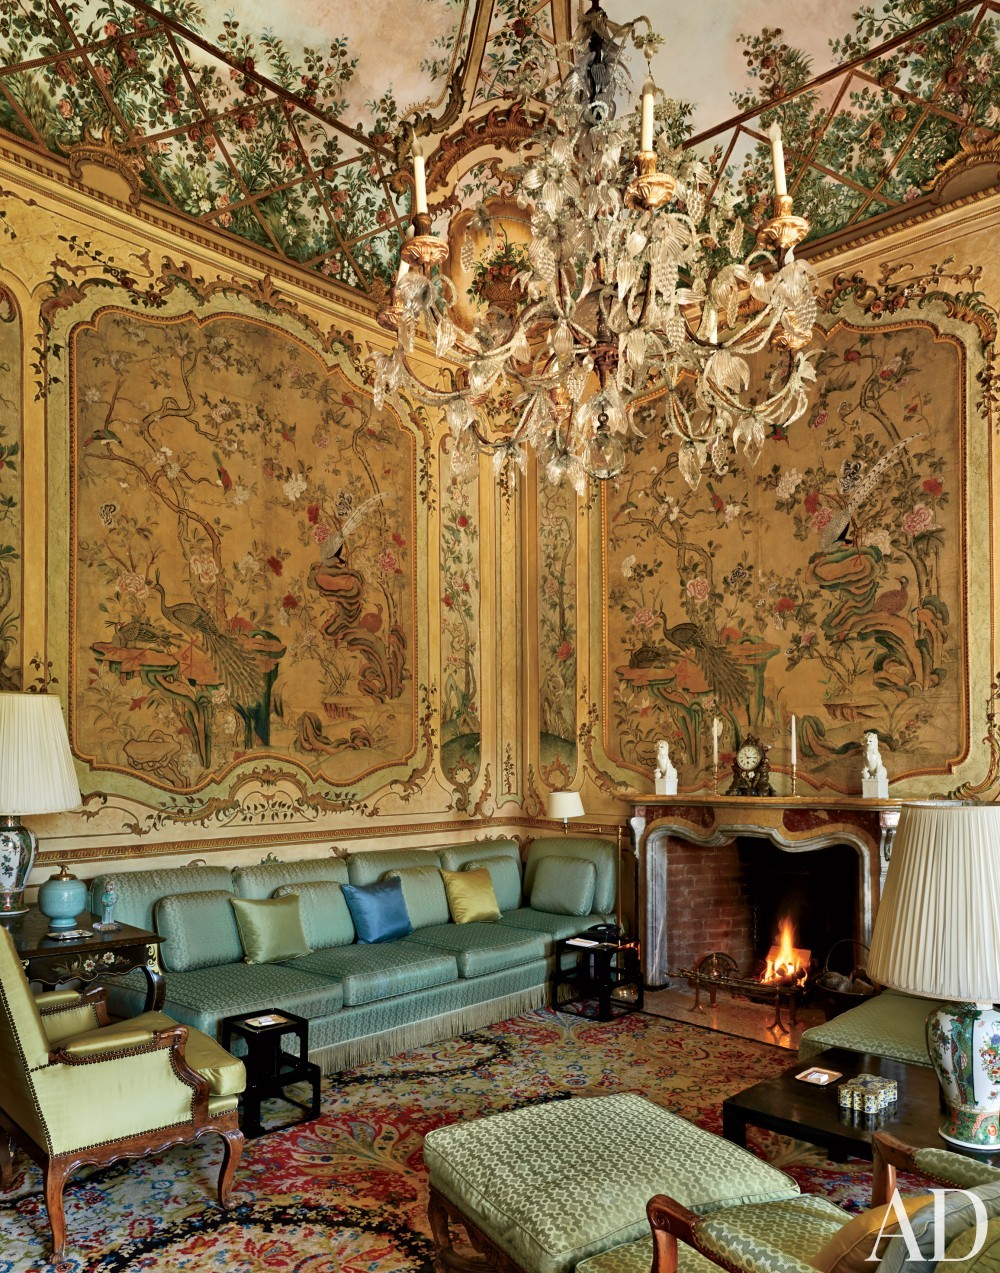 Traditional Italian Living Room Sets: AD DesignFile - Home Decorating Photos